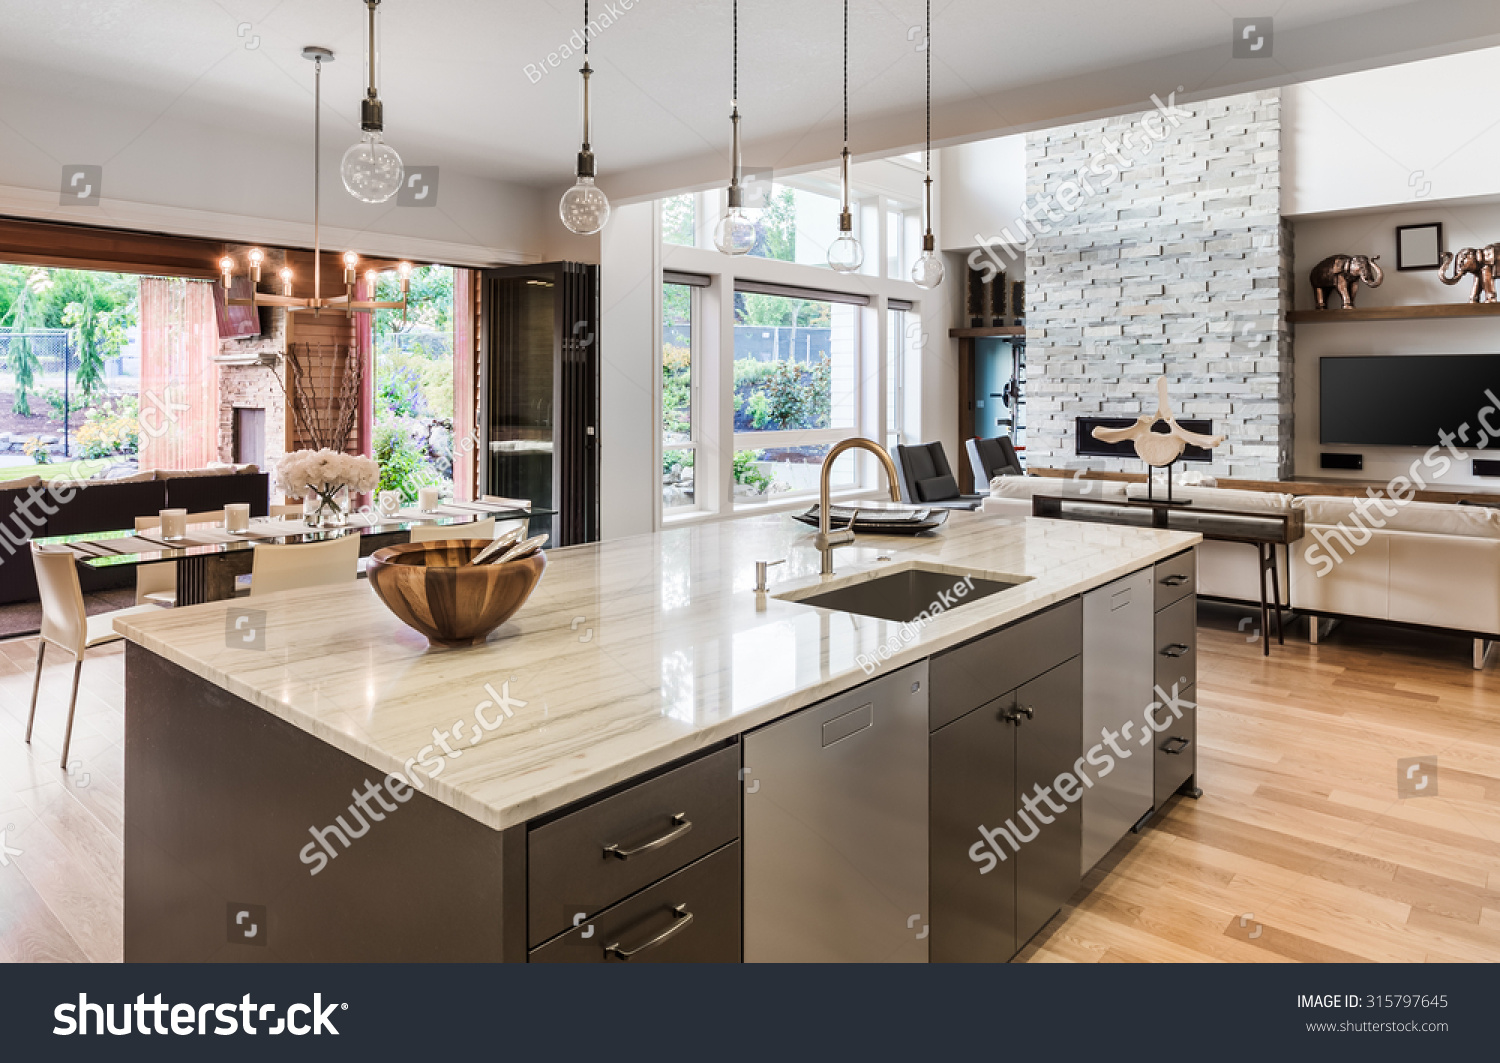 Kitchen With Island, Sink, Cabinets, And Hardwood Floors In New Luxury Home,